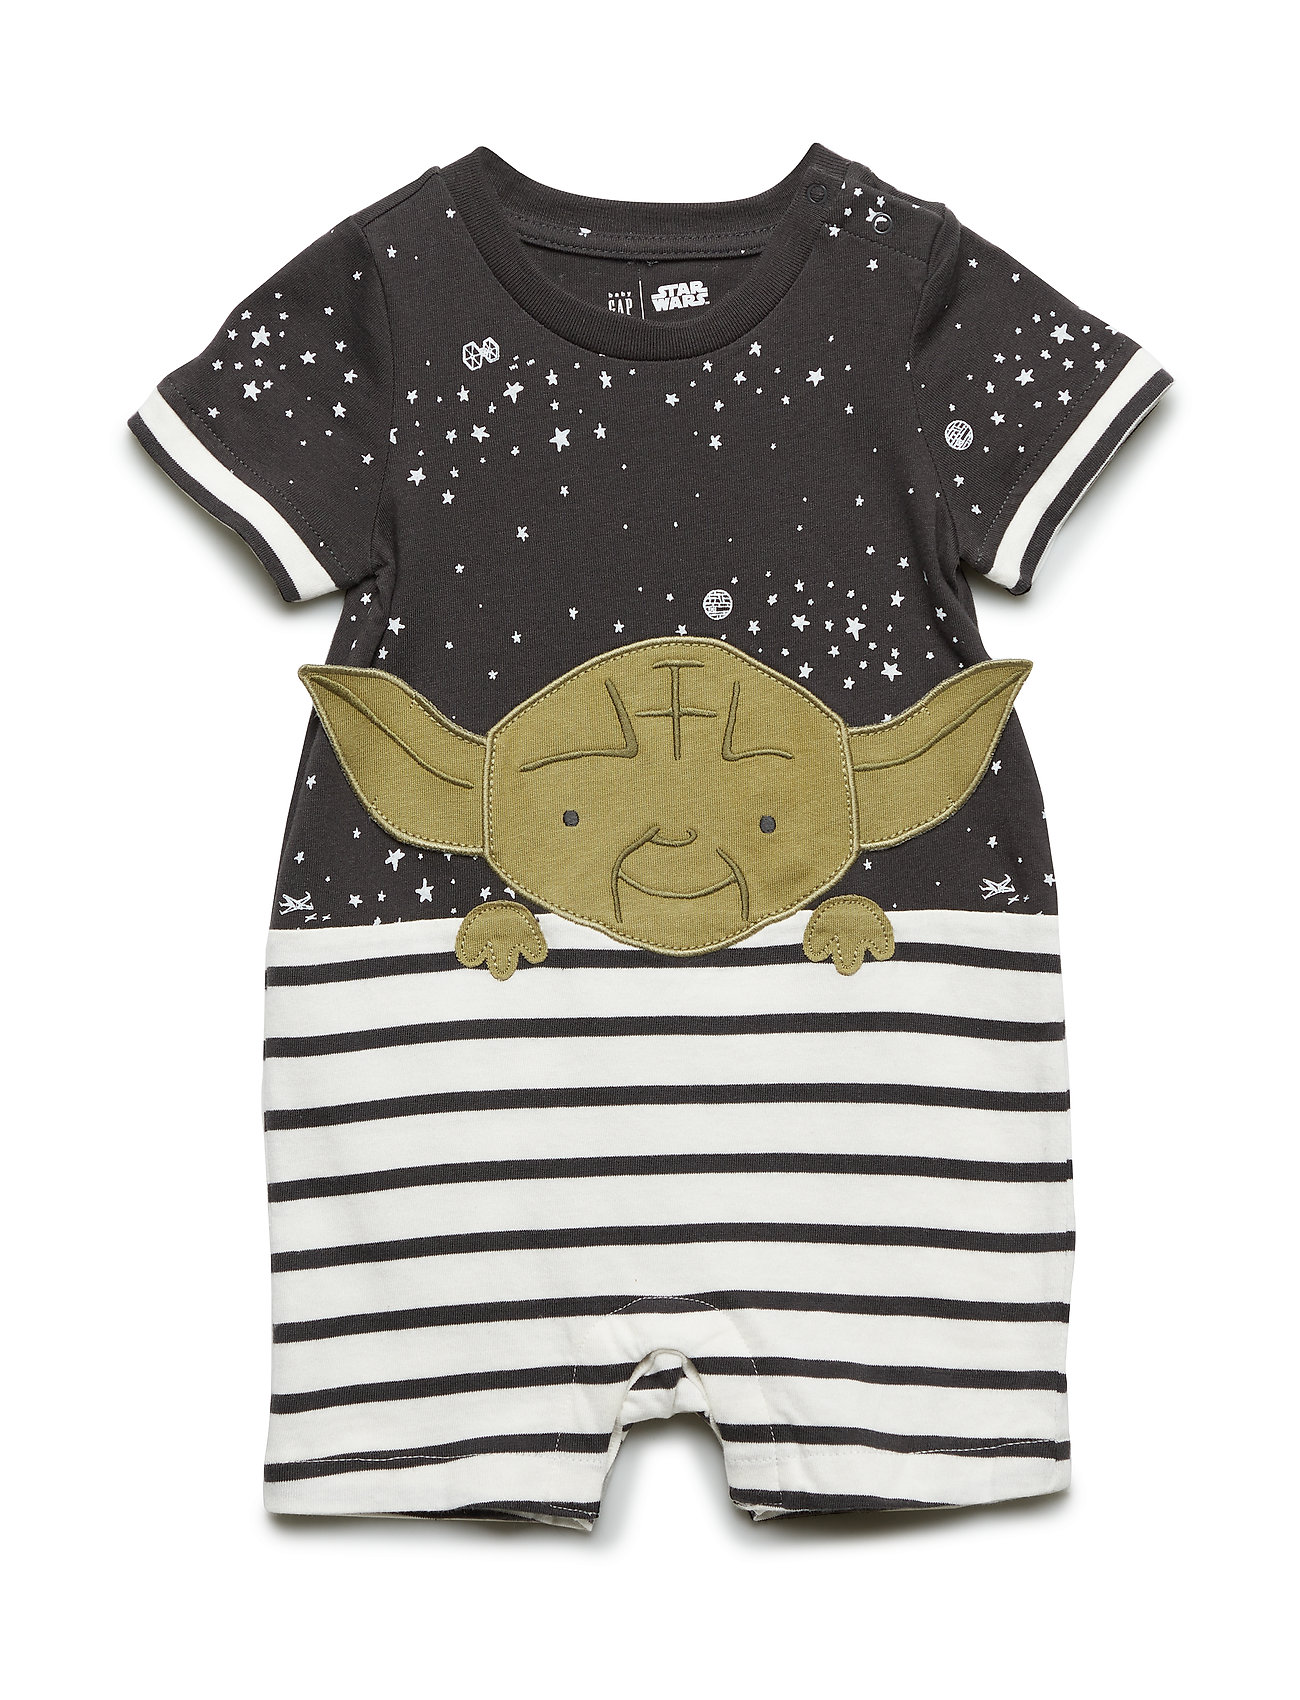 GAP babyGap | Star Wars™ Yoda Shorty One-Piece - FLINT GREY